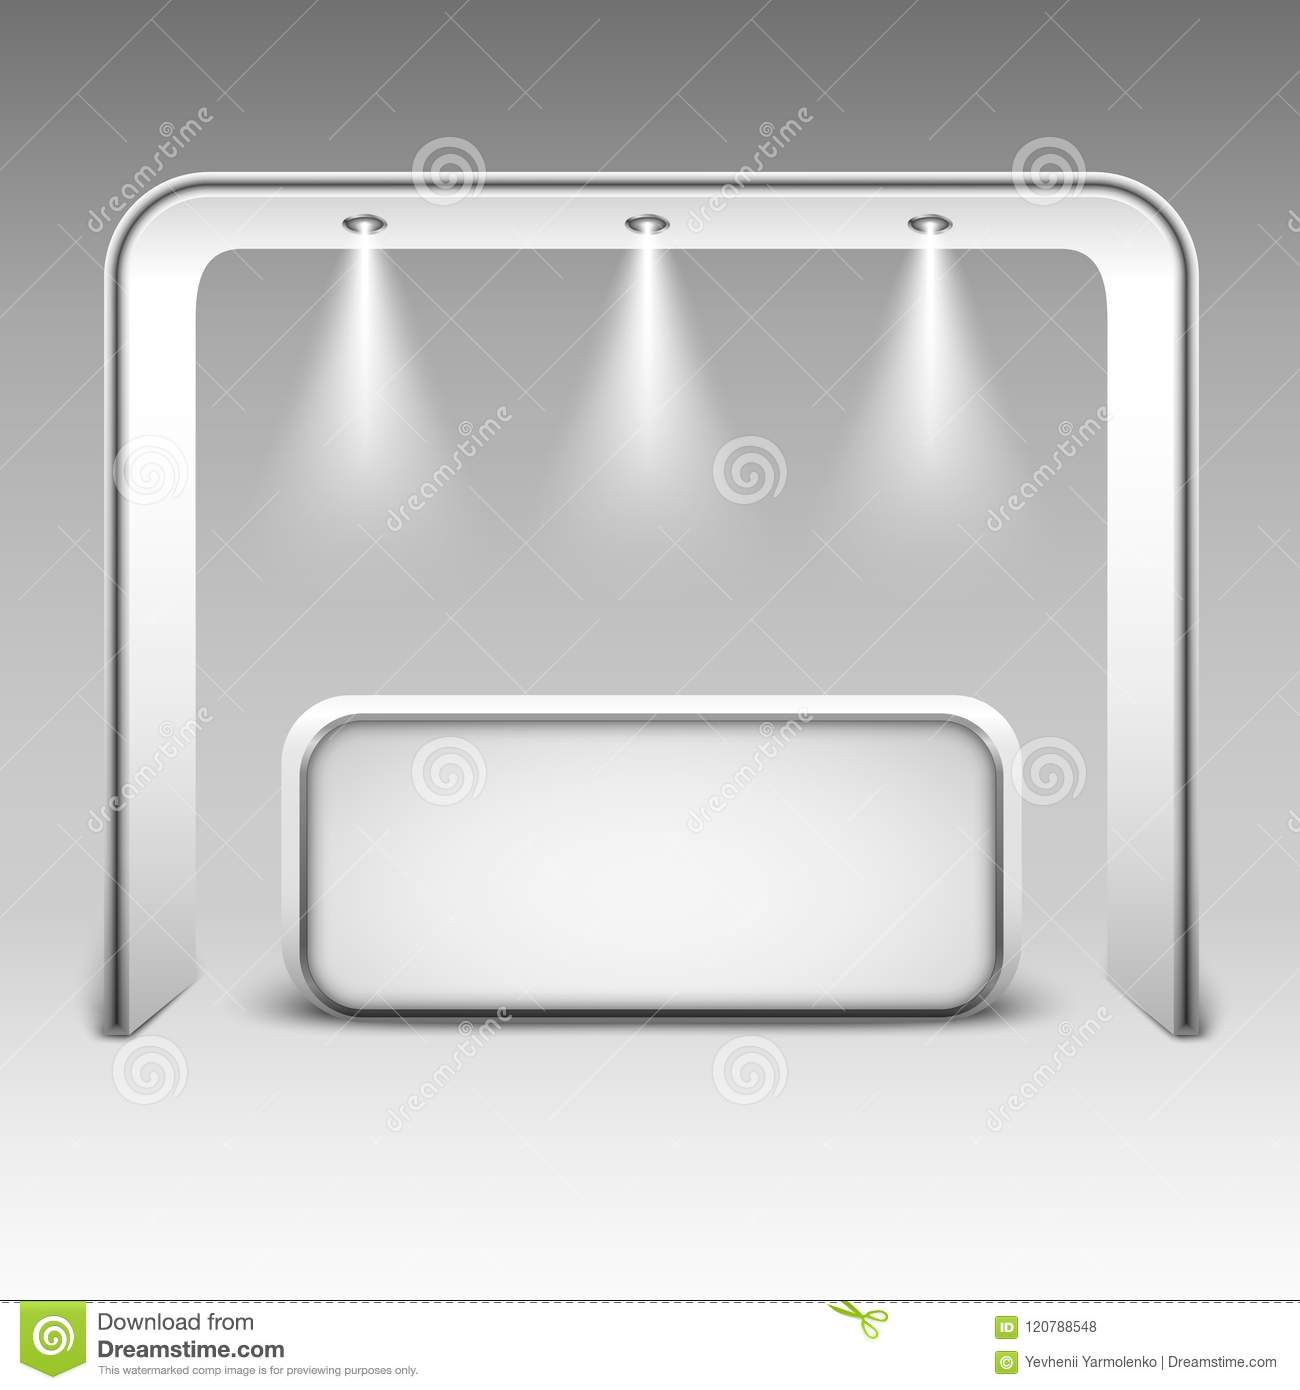 Exhibition Booth Mockup Free Download : Trade exhibition stand mock up isolated on white background white